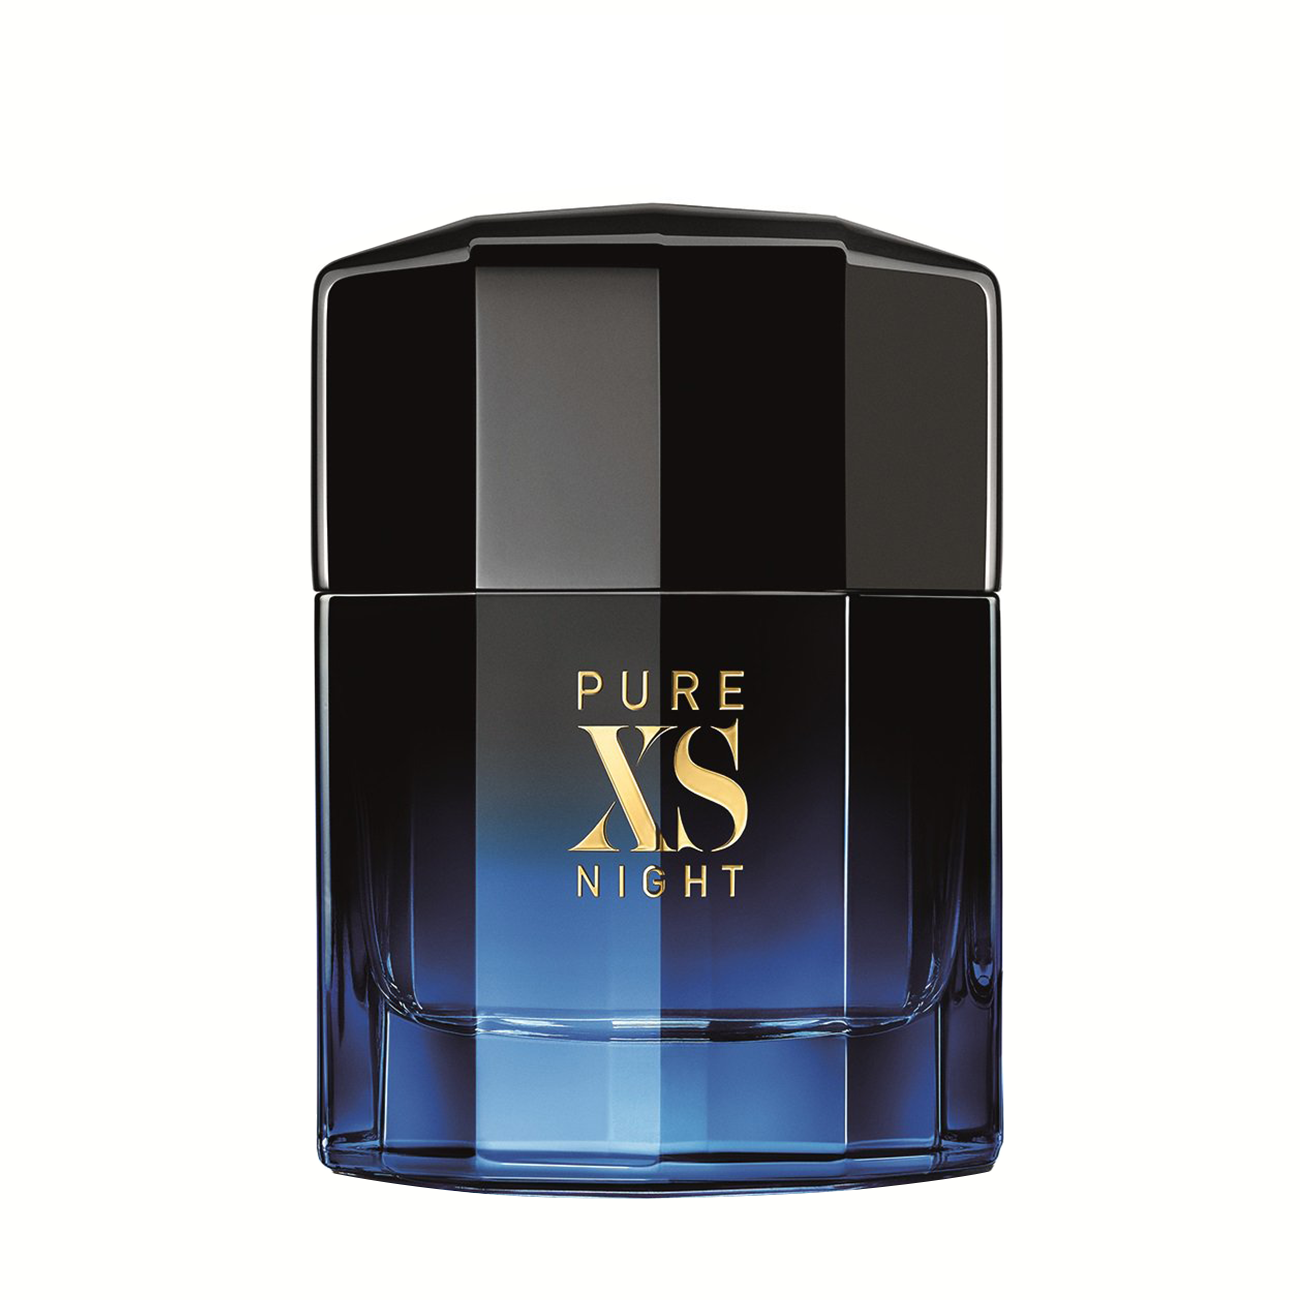 PURE XS NIGHT 100ml